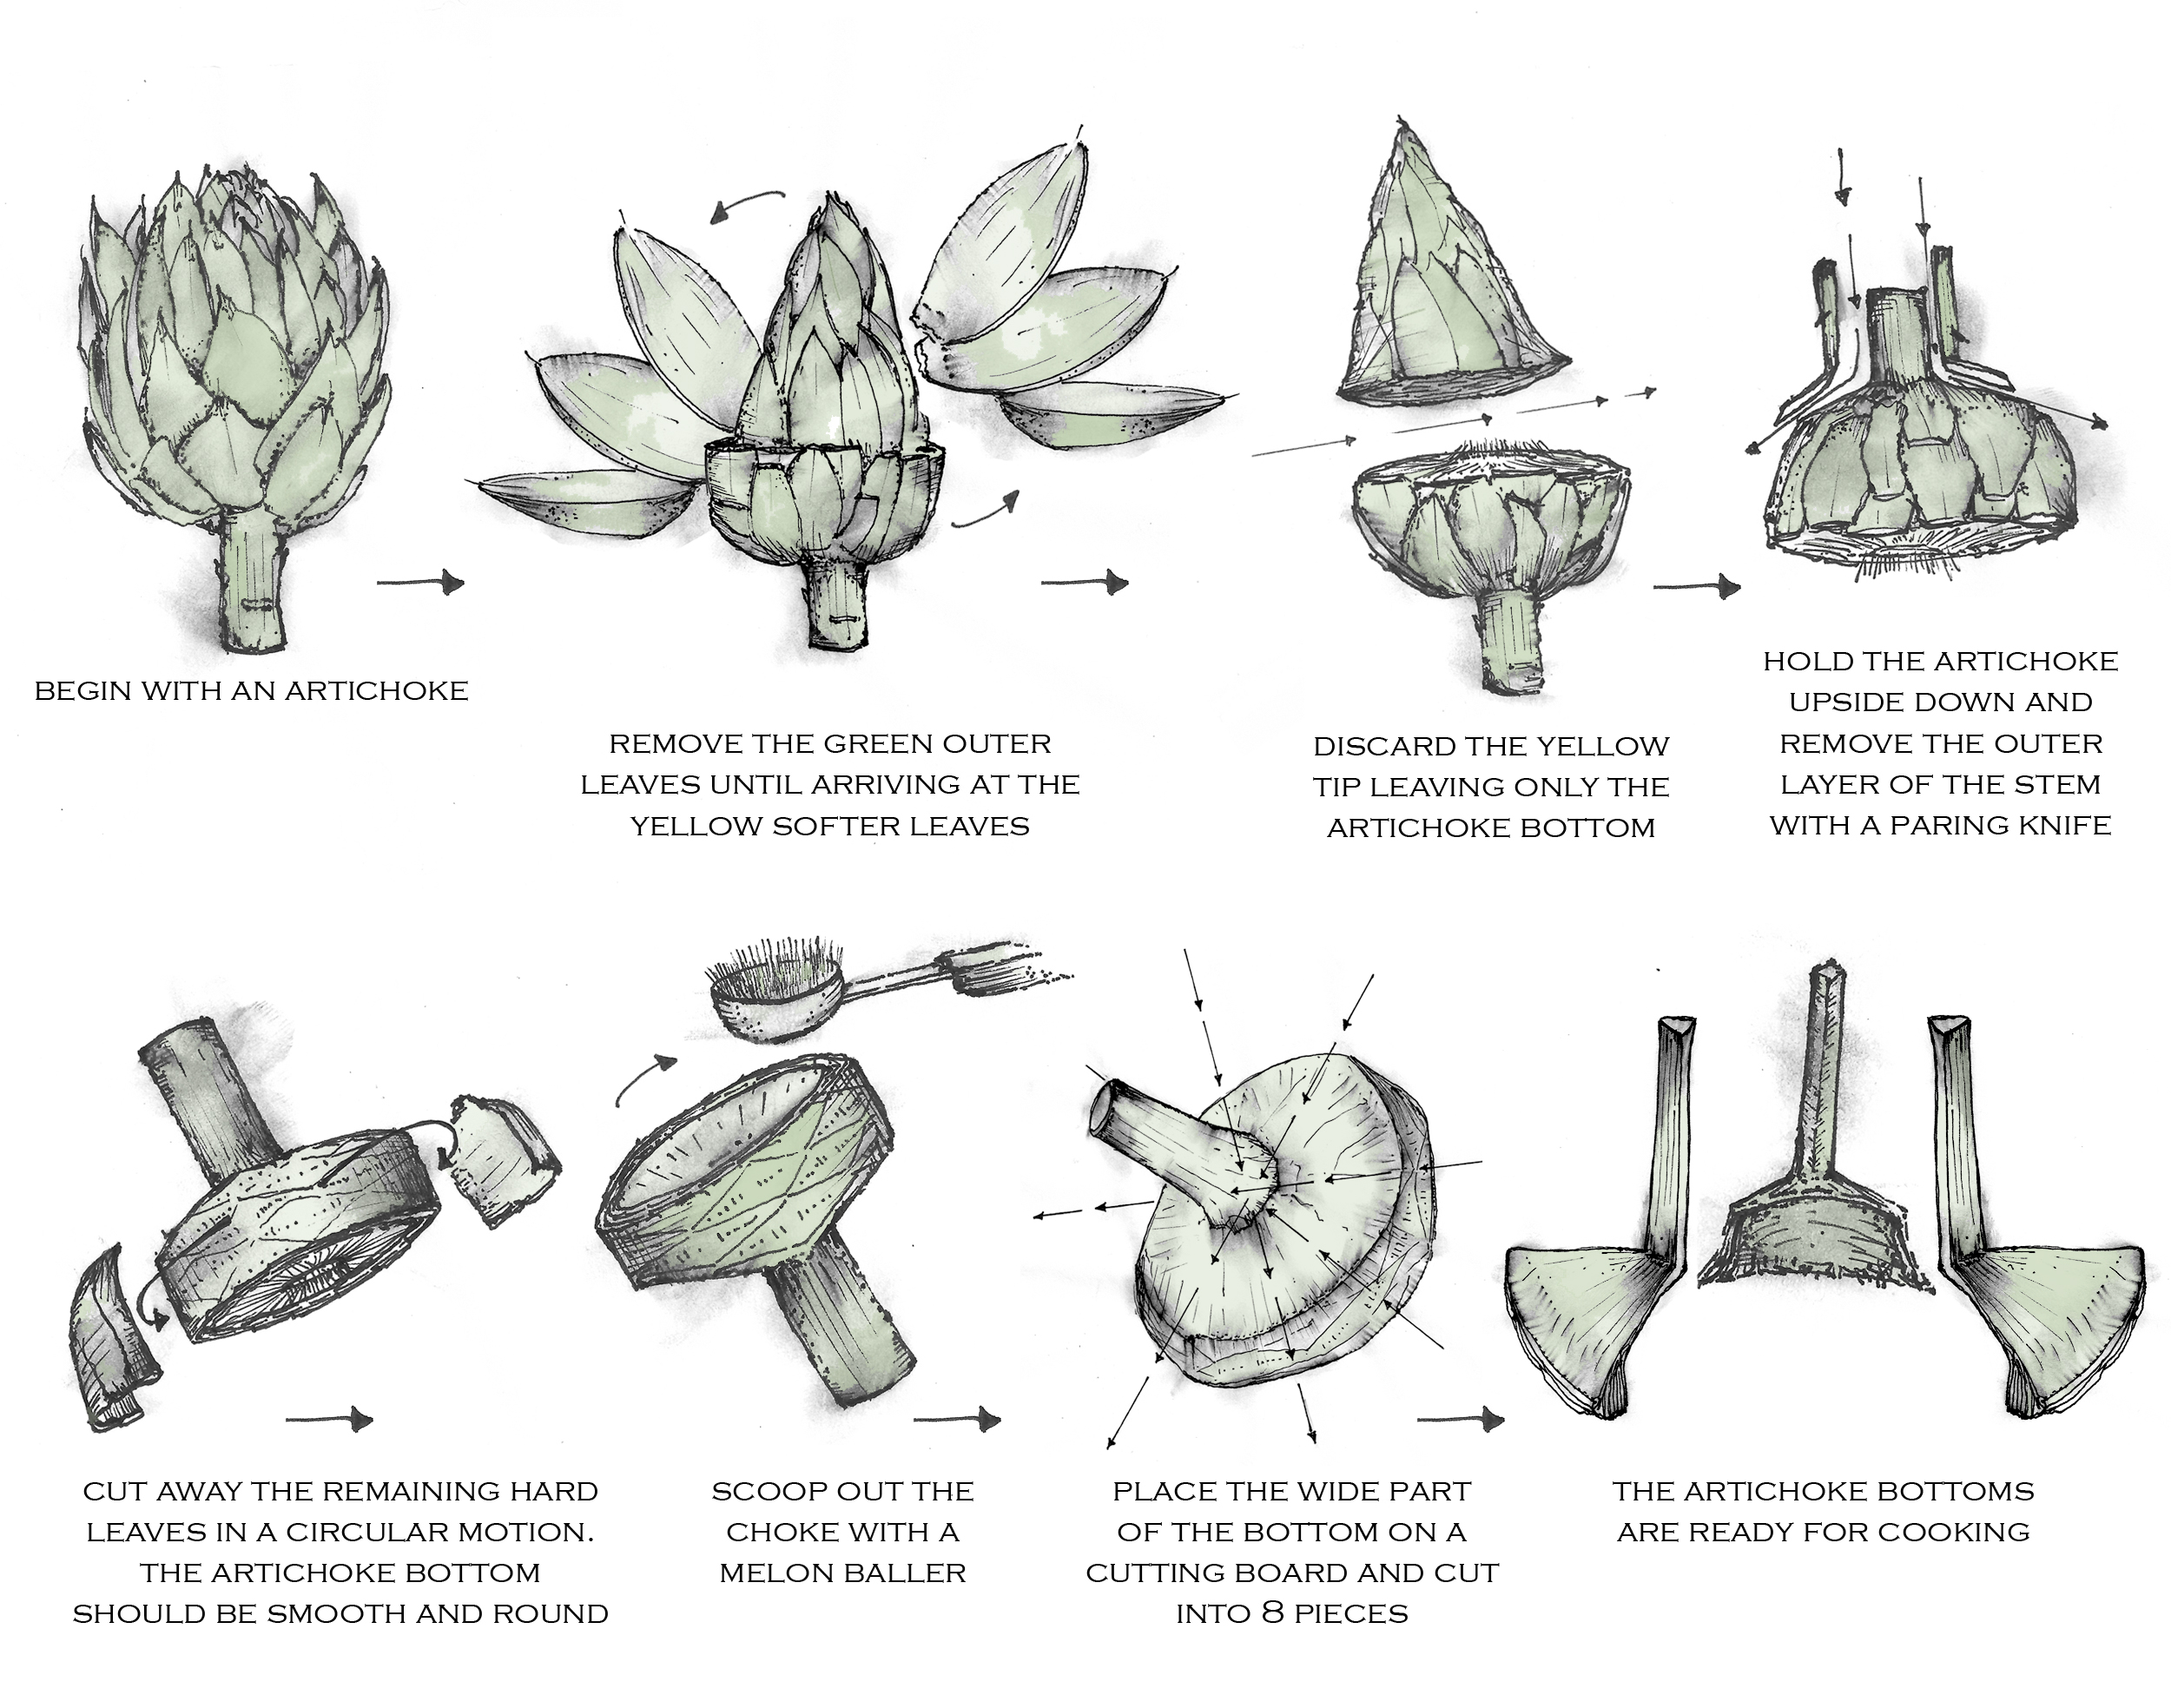 How to clean and turn and artichoke